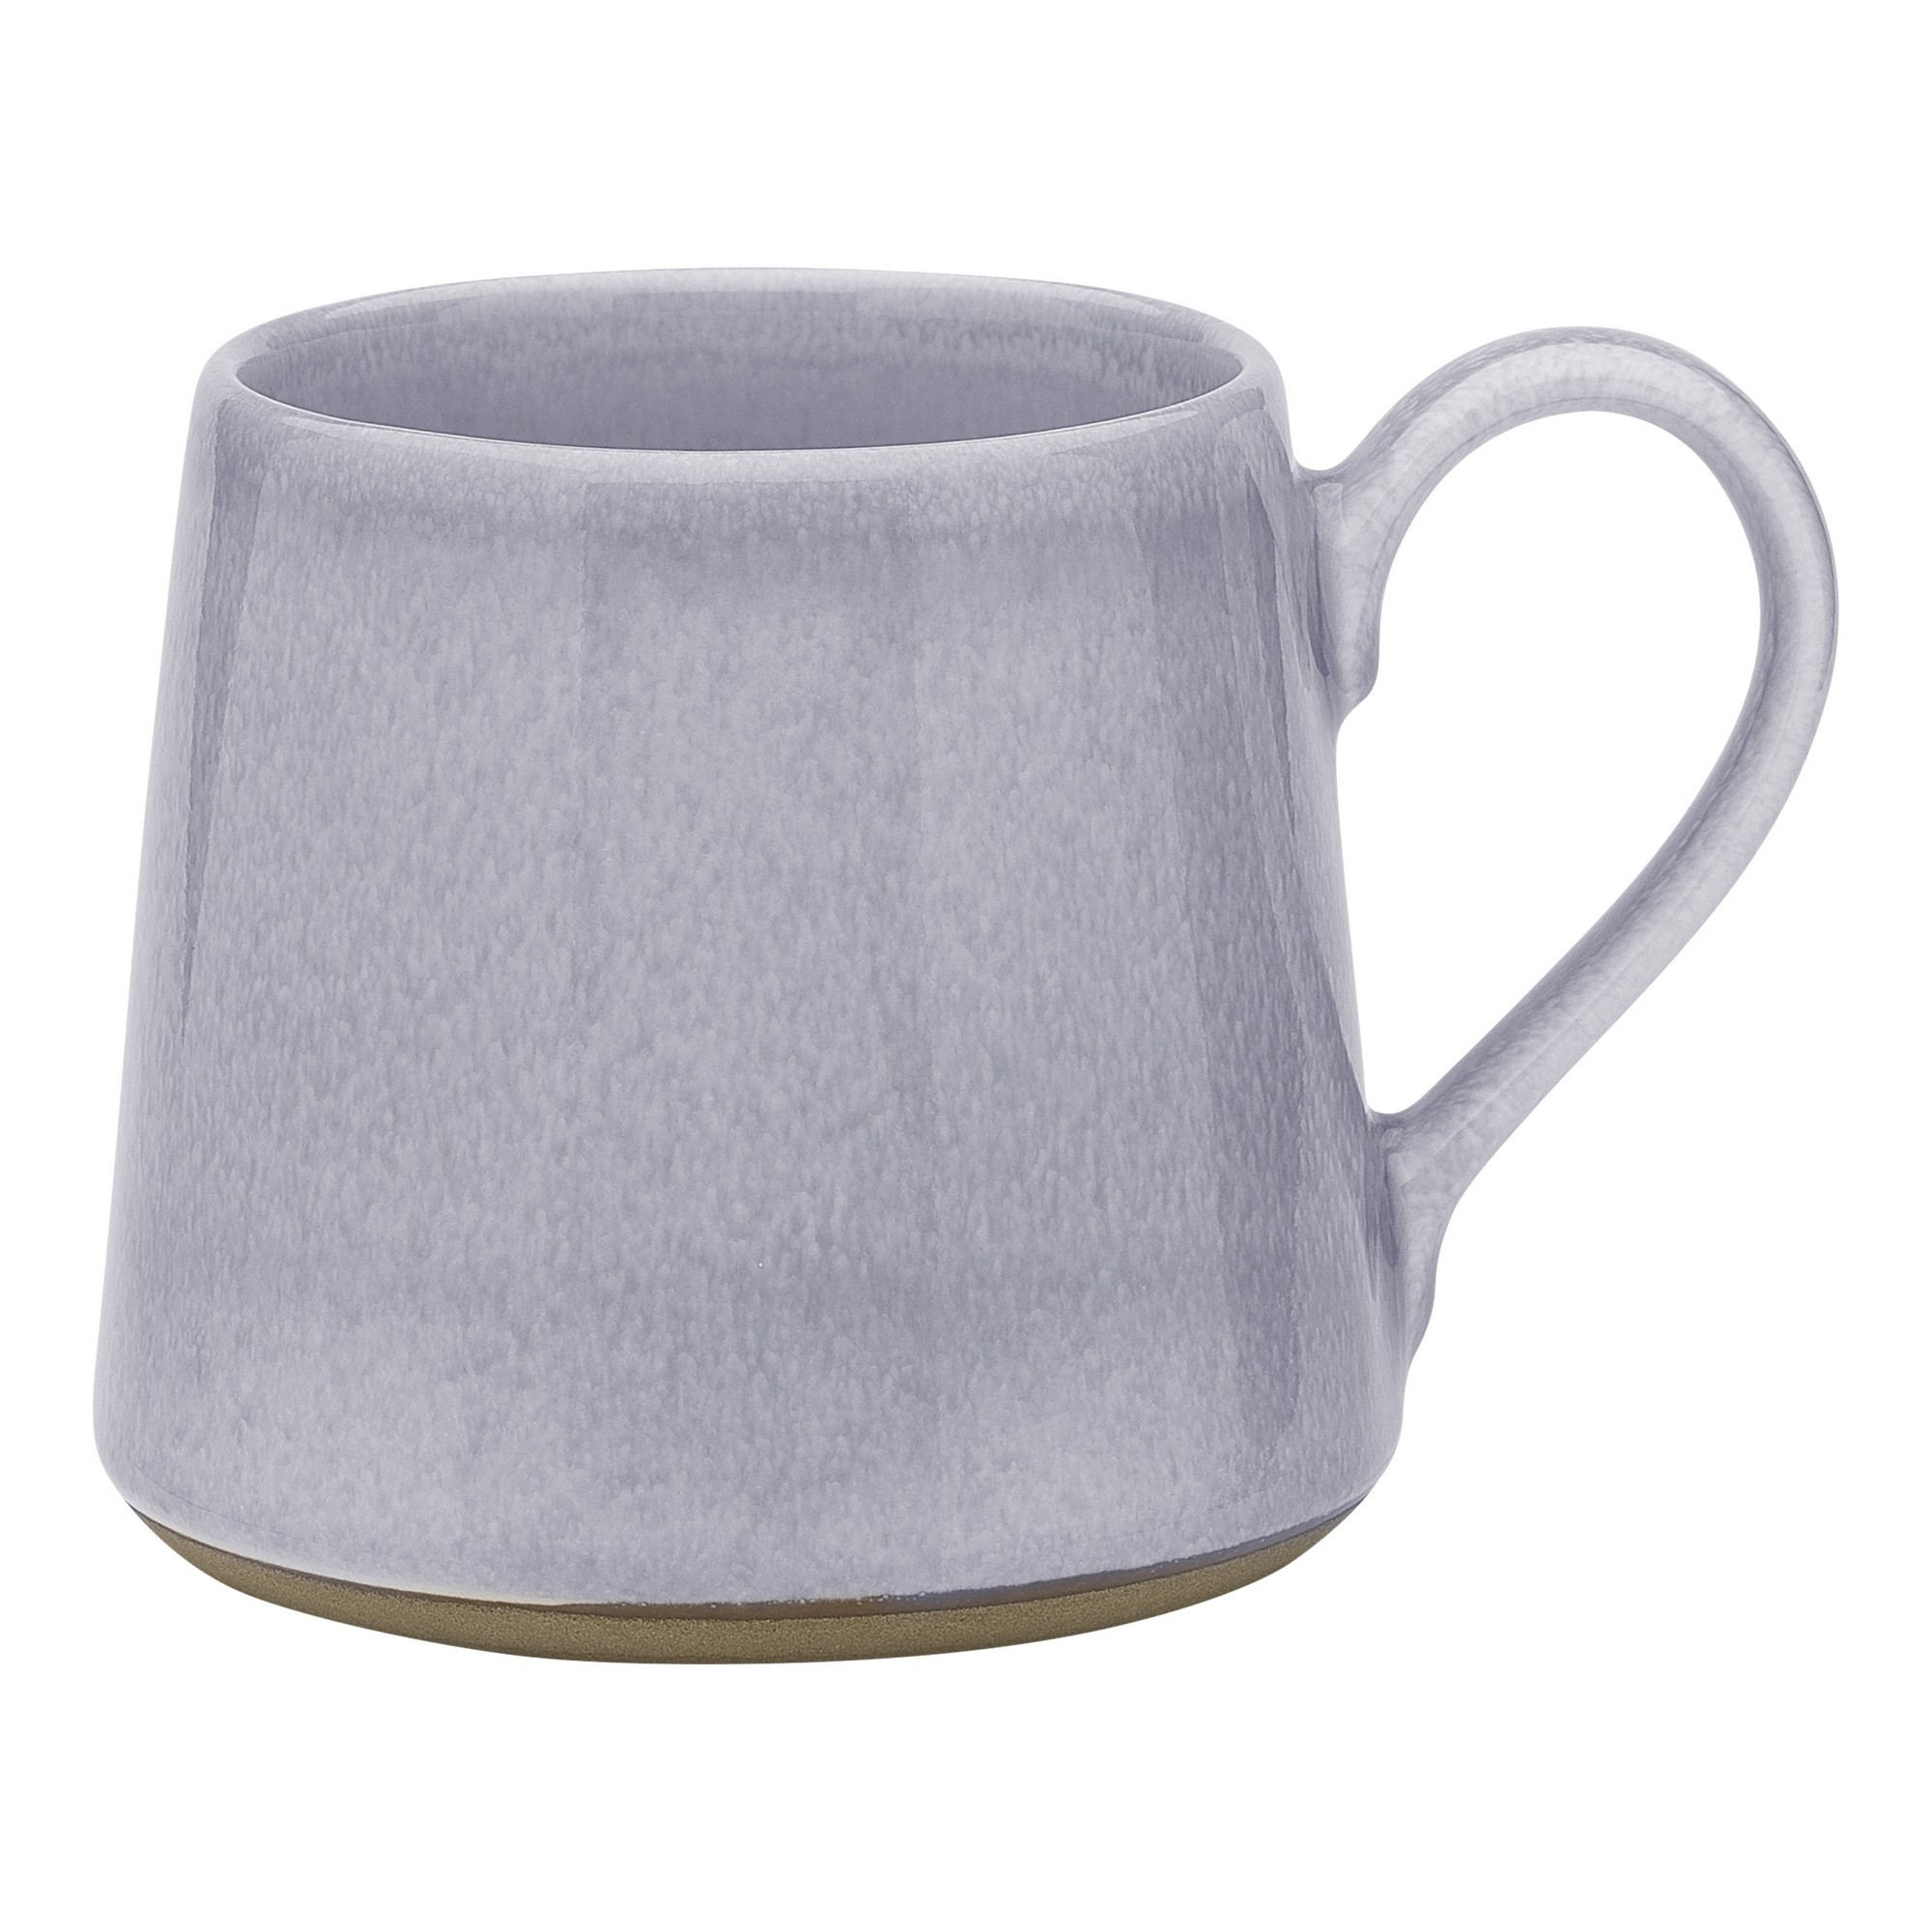 Ecology Juna Stoneware Mug, Dewberry